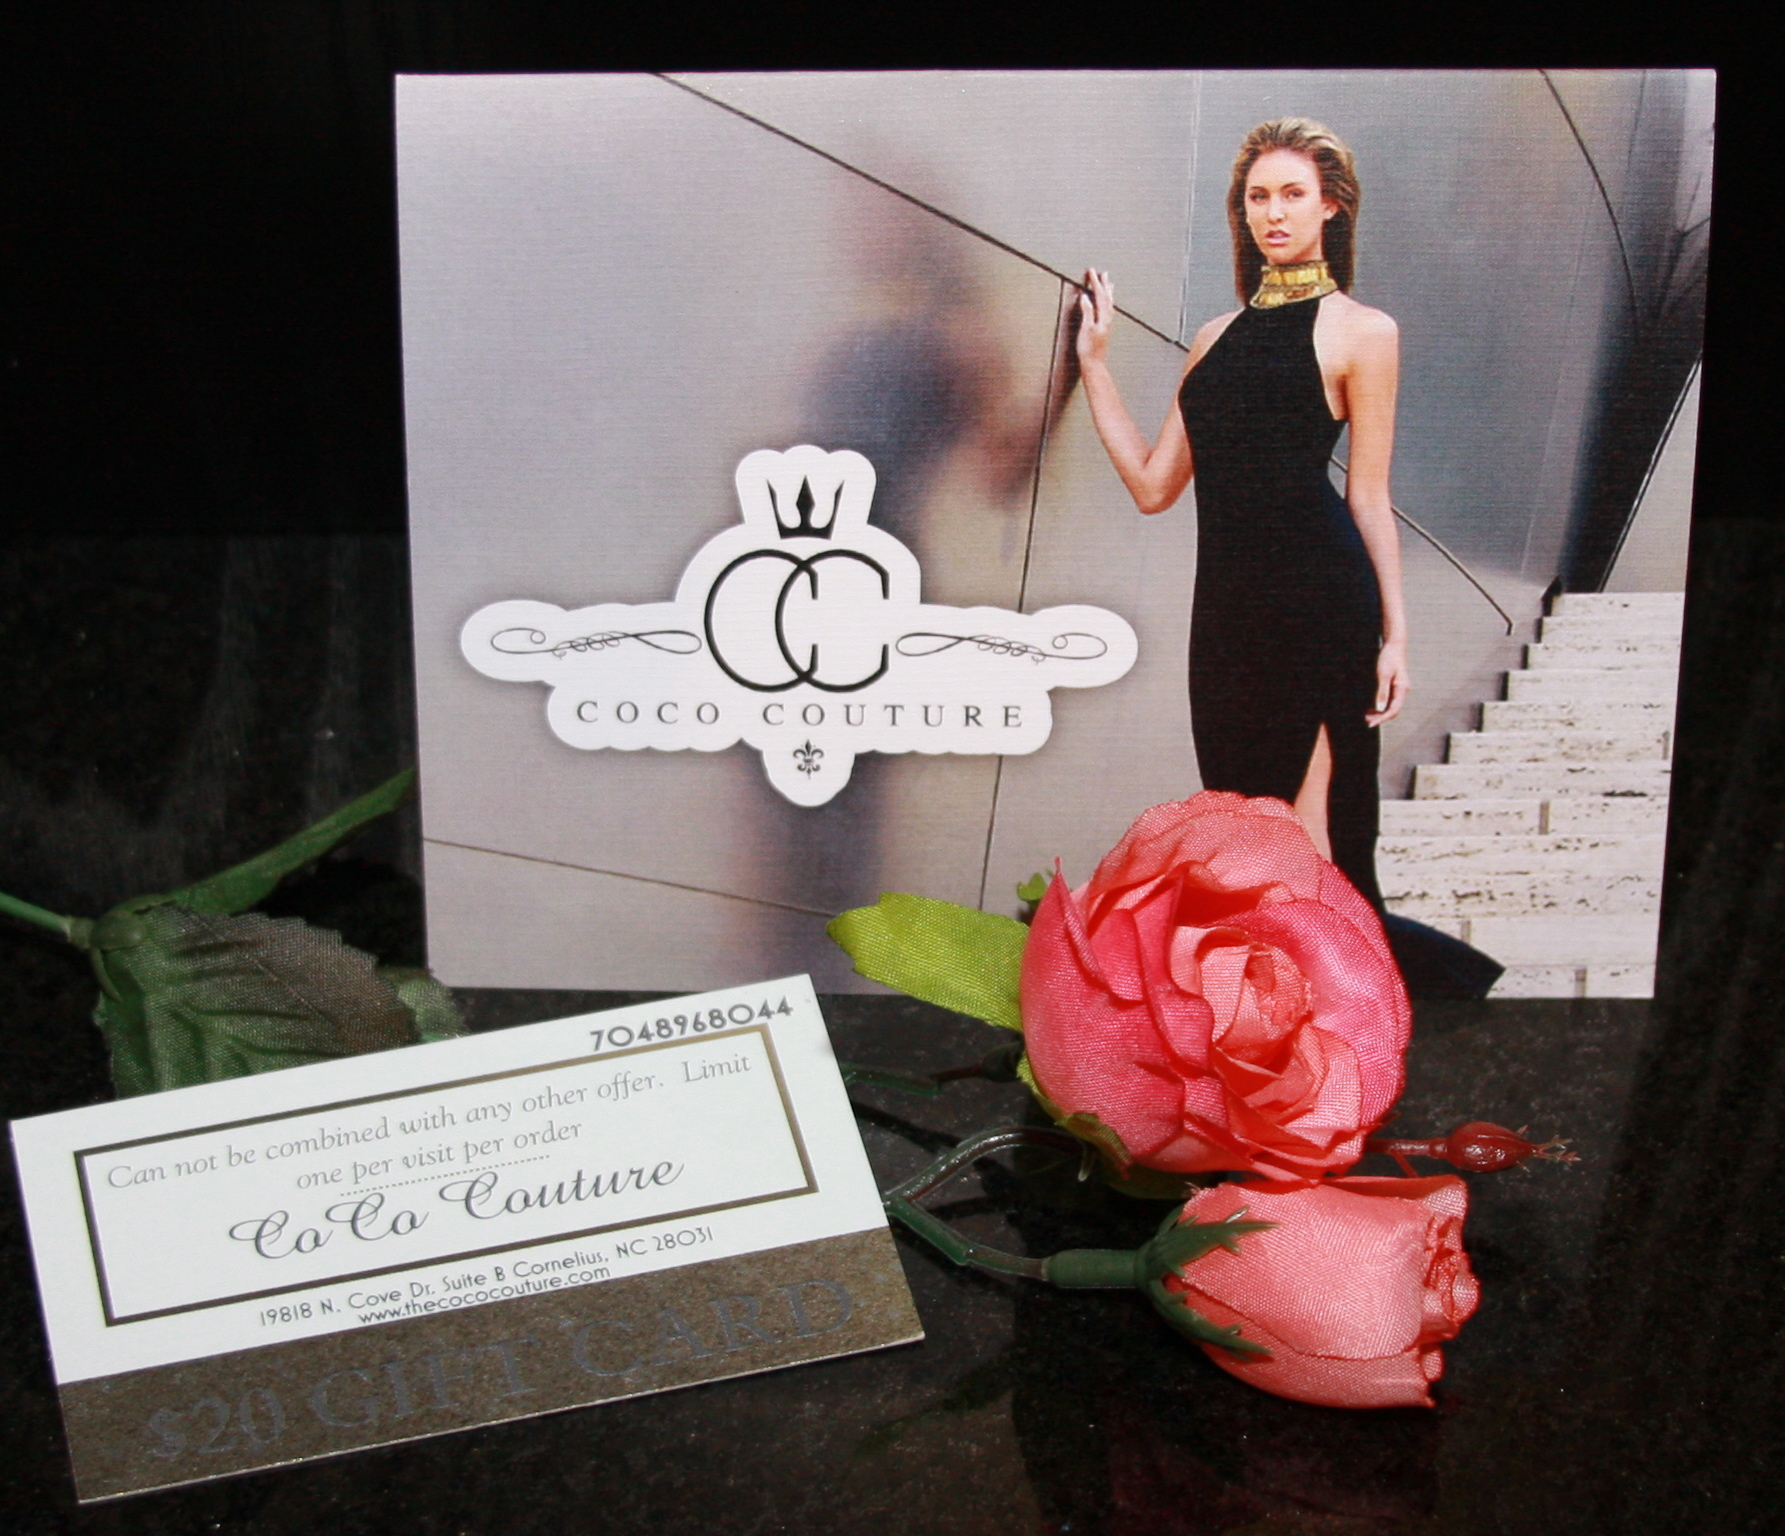 coco couture, lake norman, birkdale, charlotte, moving to charlotte, victoria schweizer, southern luxurie